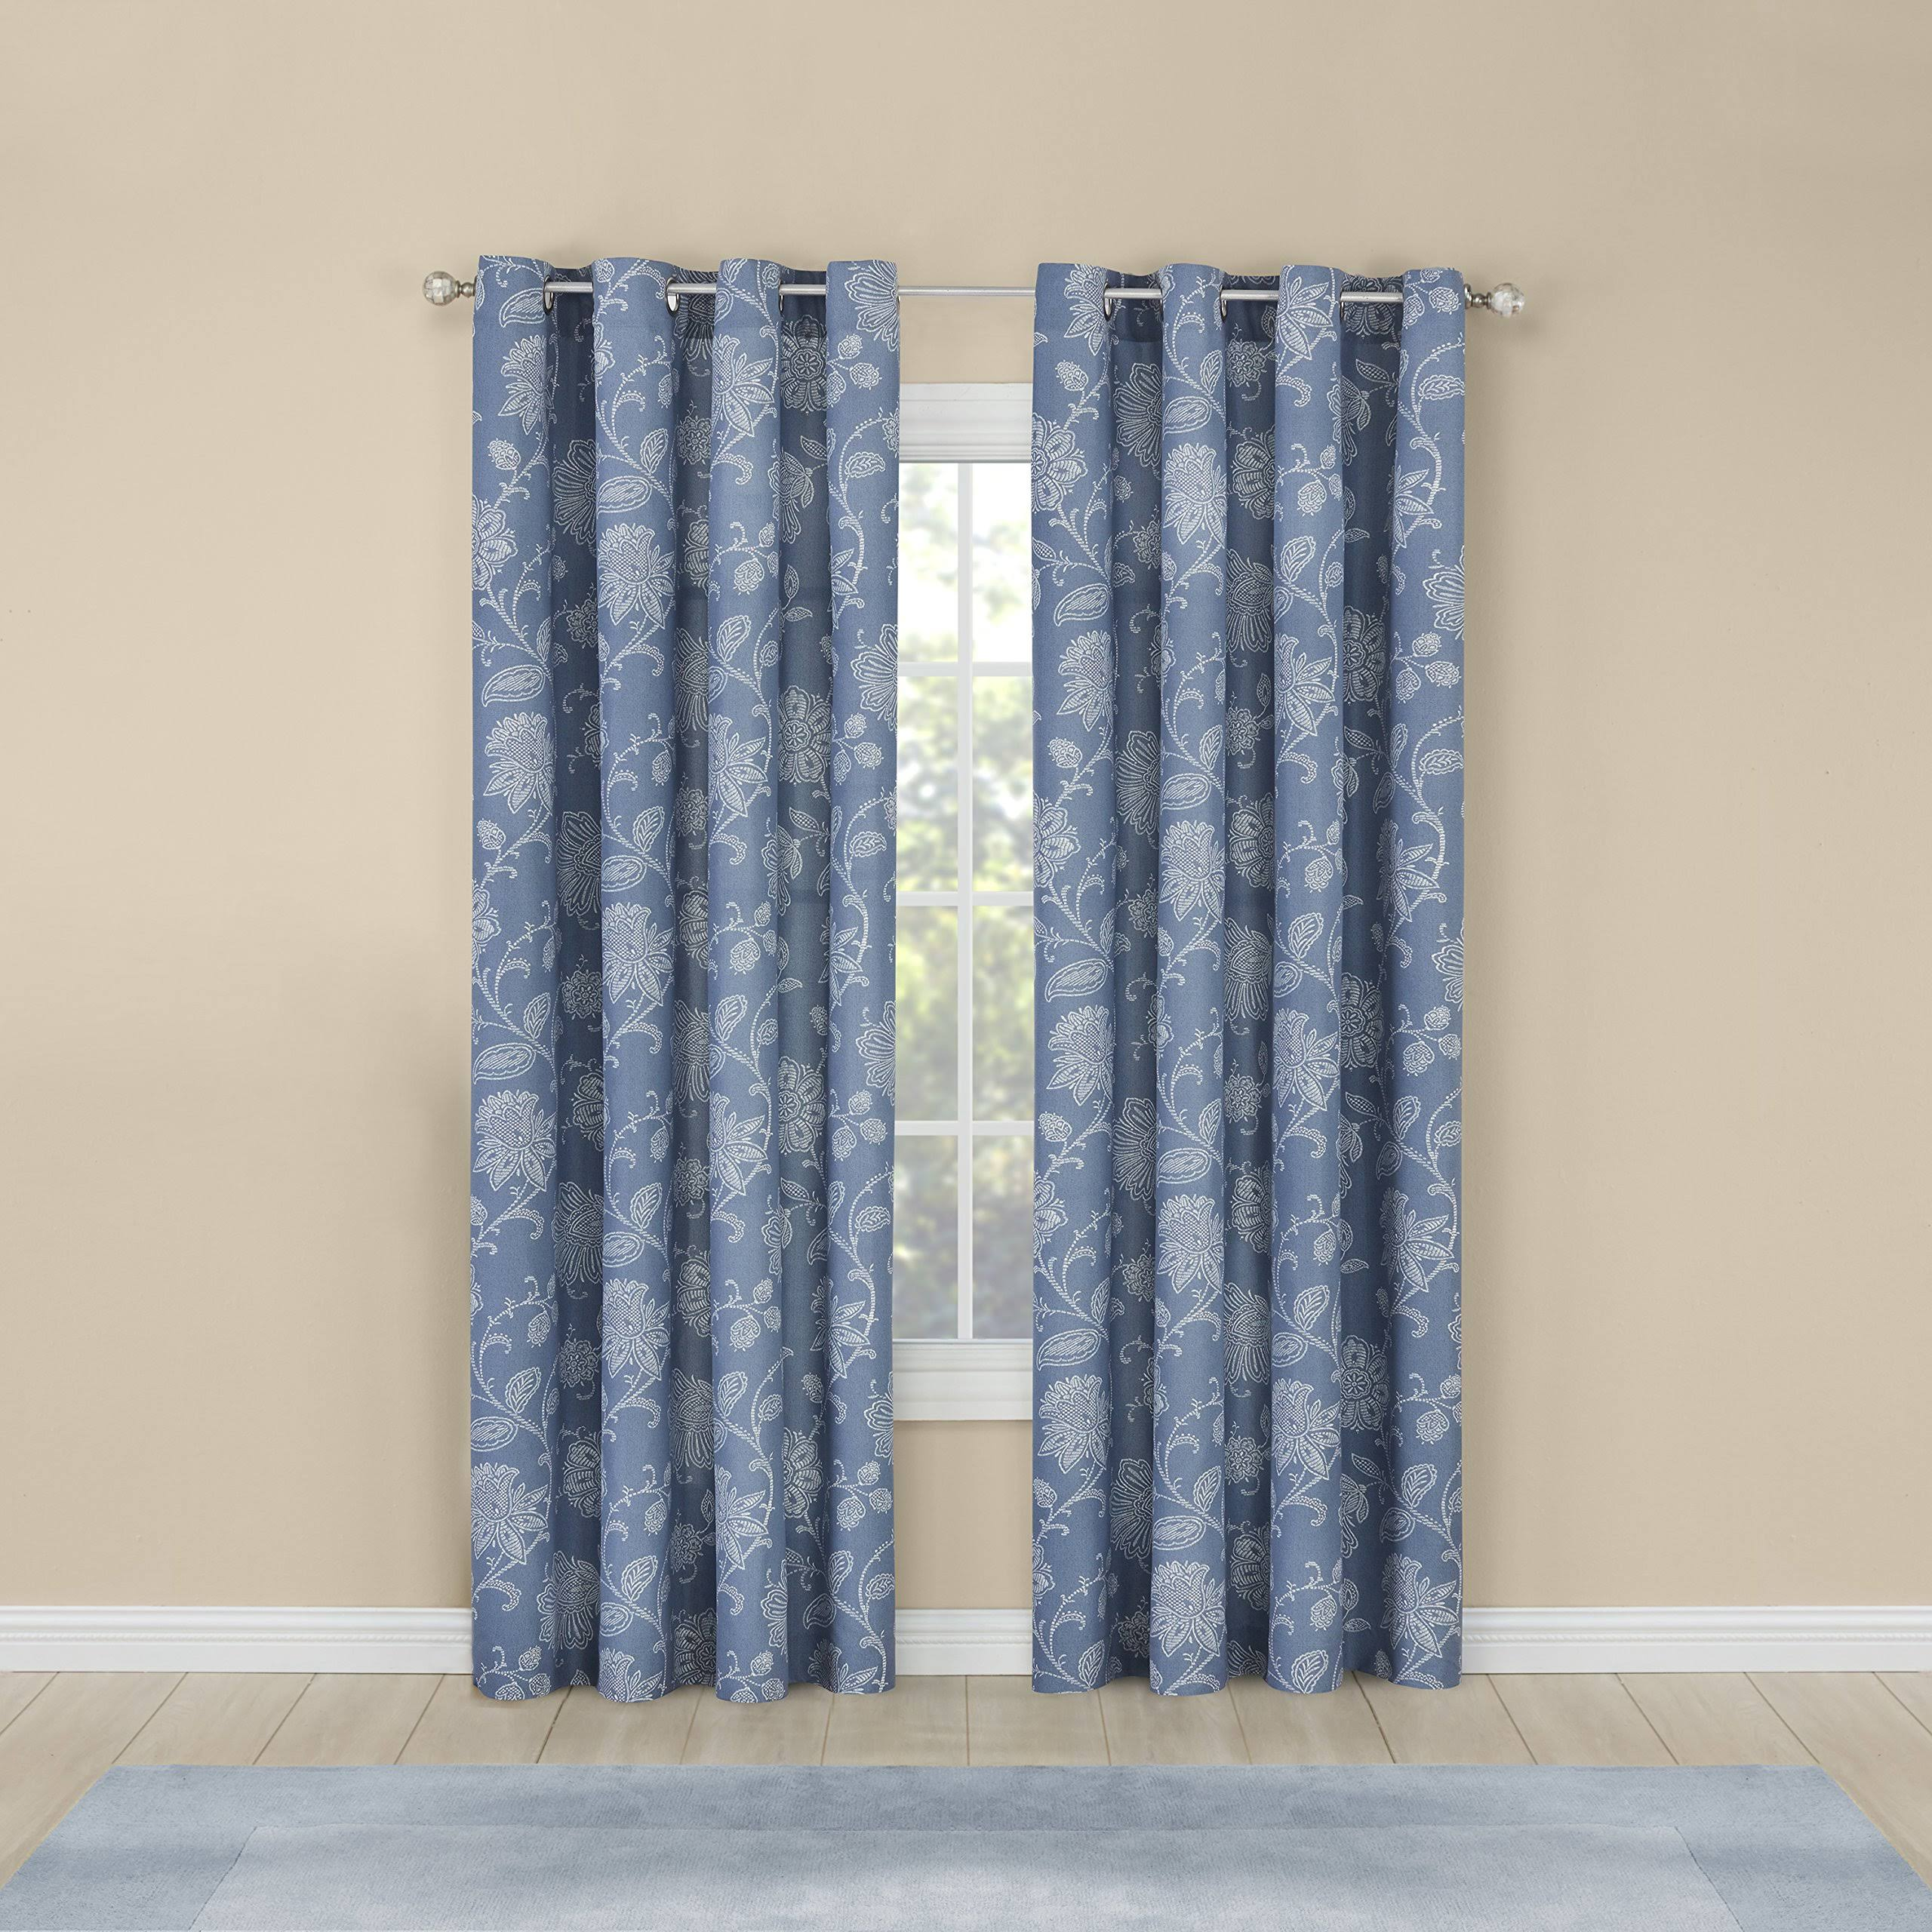 Belle Maison Felicity Printed Grommet Panel, Size: 52 inch x 84 inch, Blue